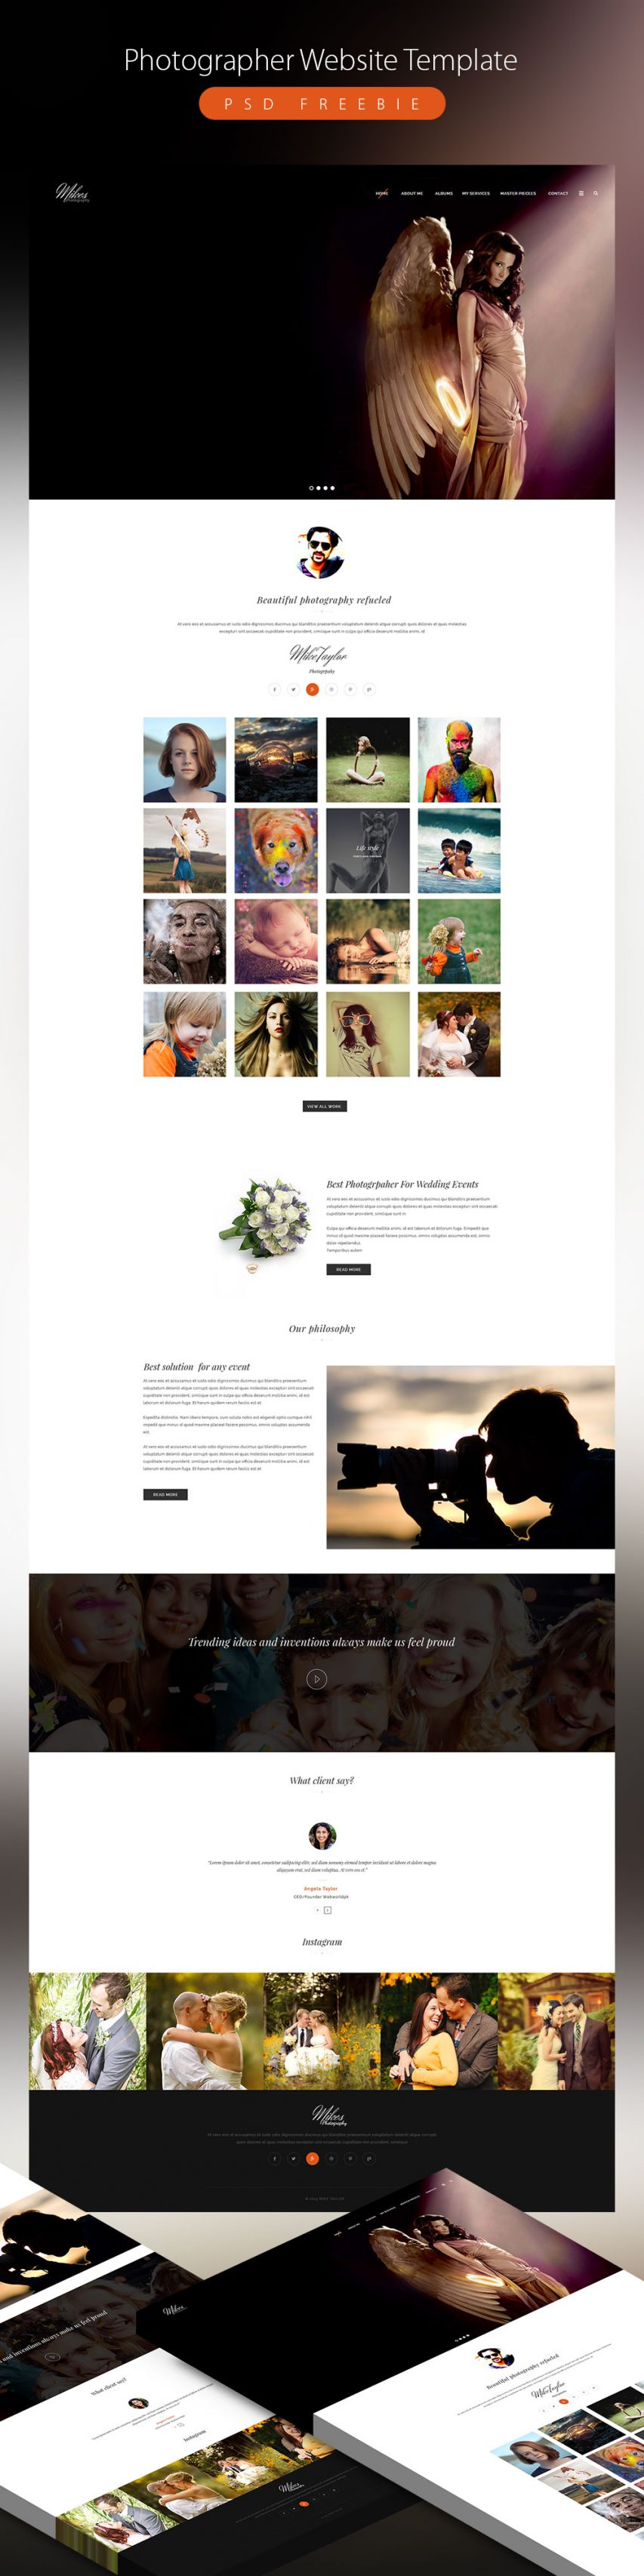 Clean Photographer Website Template